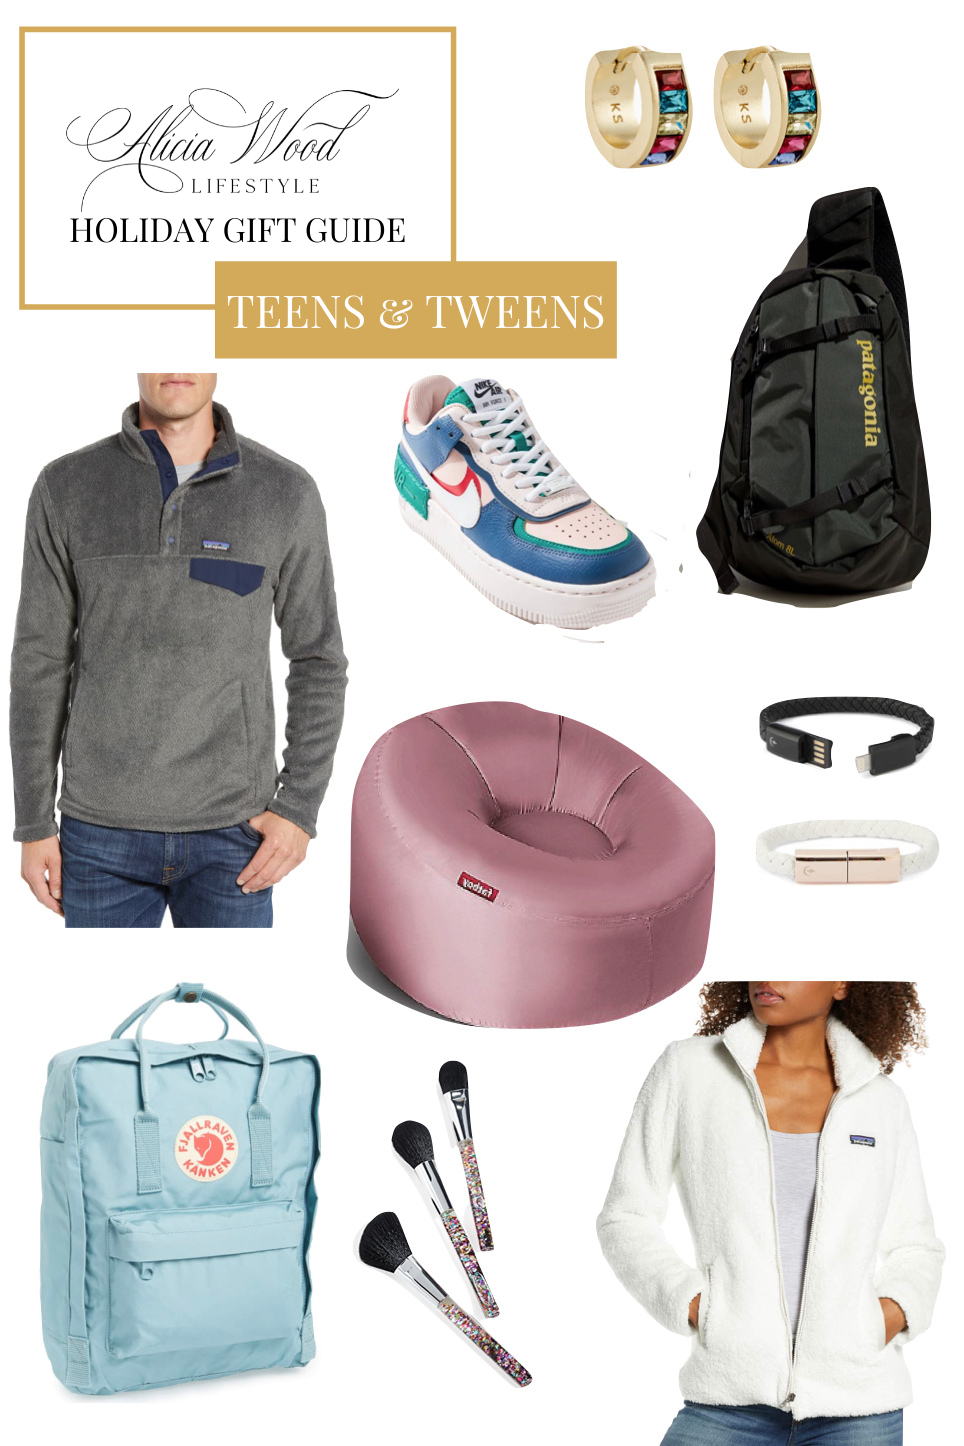 Gift Guide: The Best Gifts for Teens and Tweens